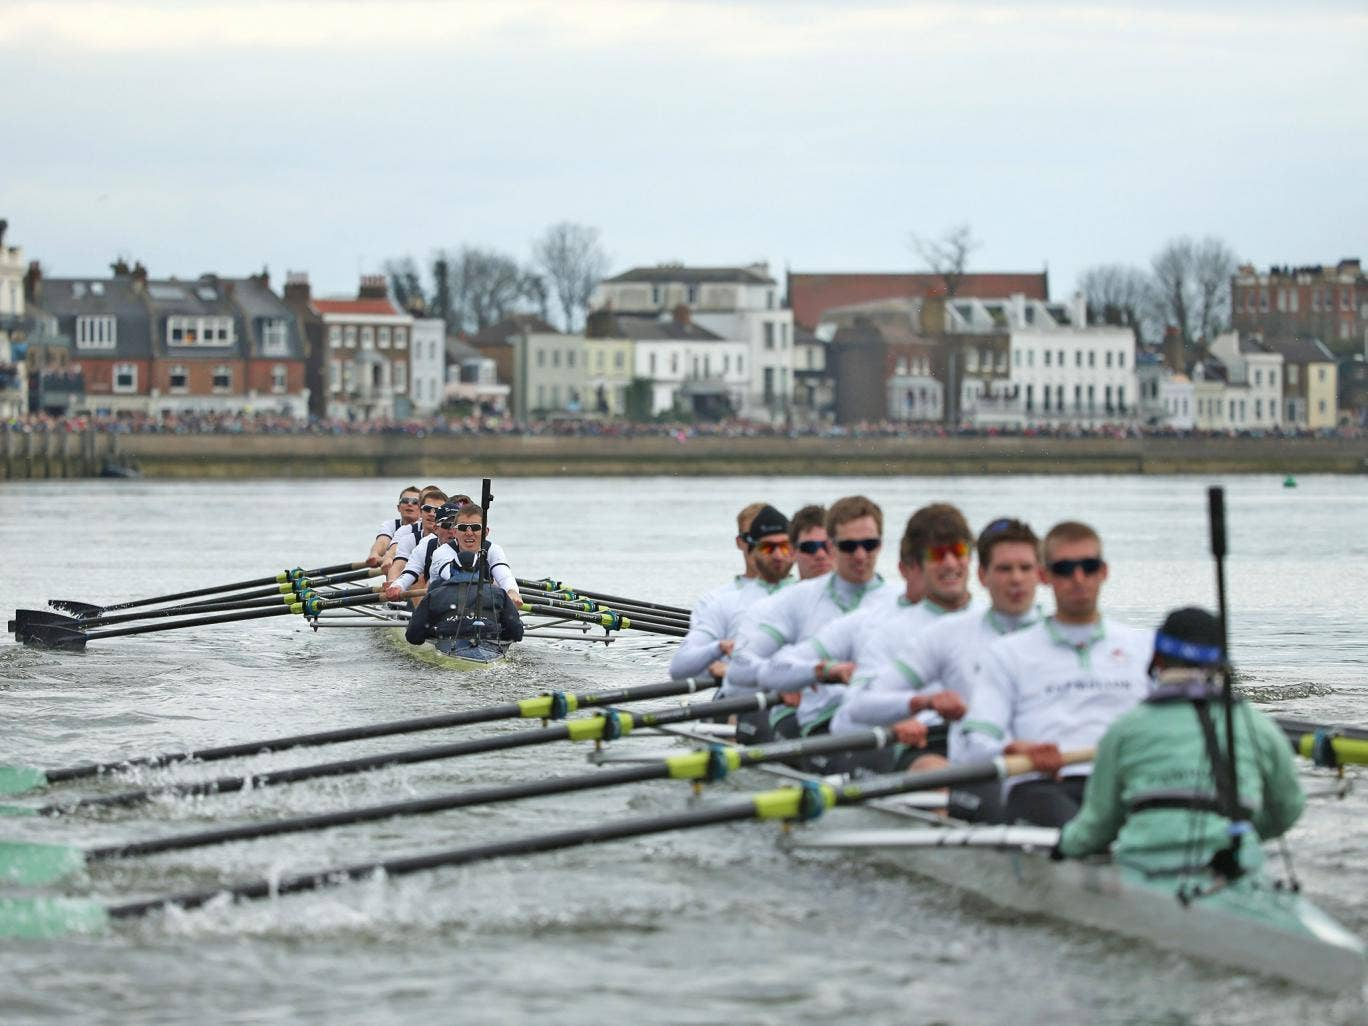 The Boat Race between Cambridge and Oxford universities is one of the most prestigious events on the sporting calendar